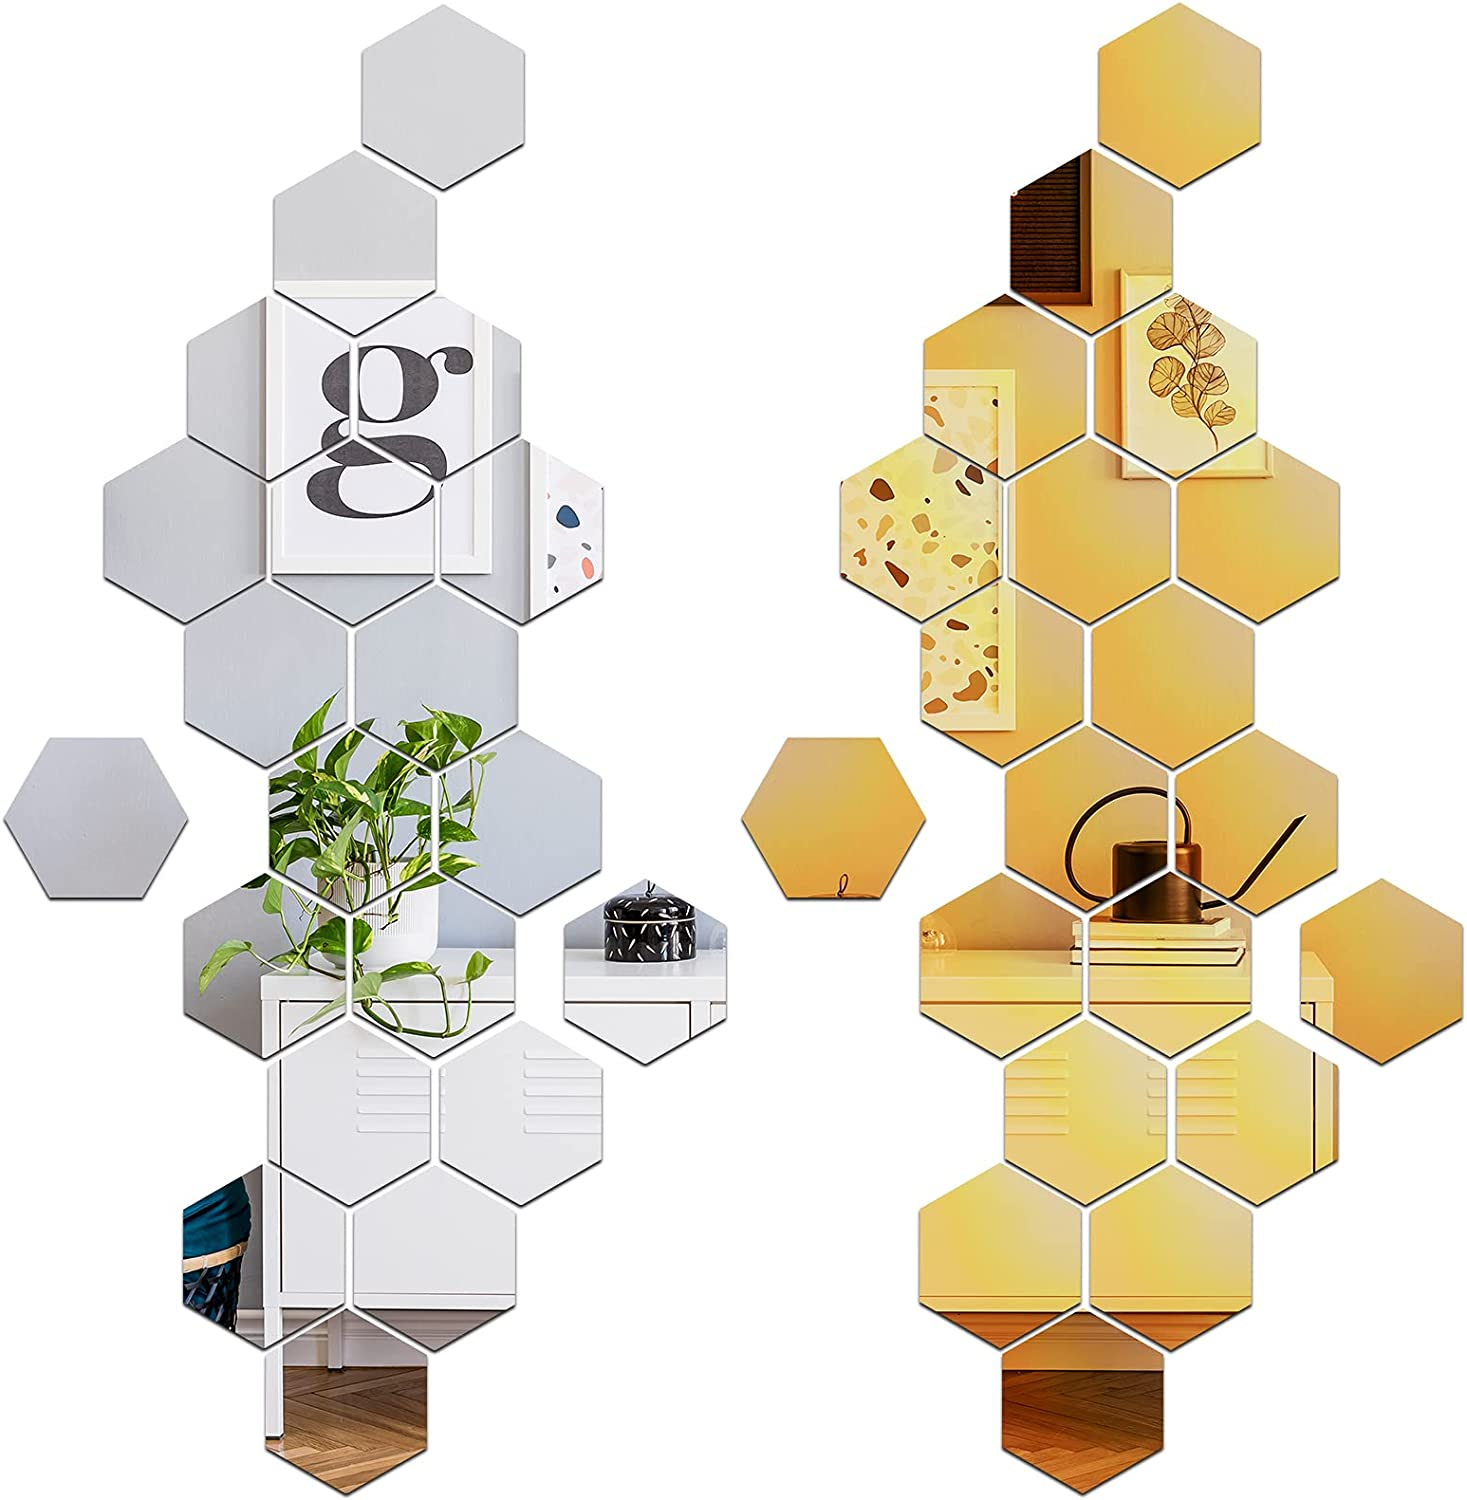 42 Pieces Hexagon Mirror Wall Stickers Removable Acrylic Wall Decals for Bedroom Home Living Room Decor (10 x 8.7 x 5 cm)